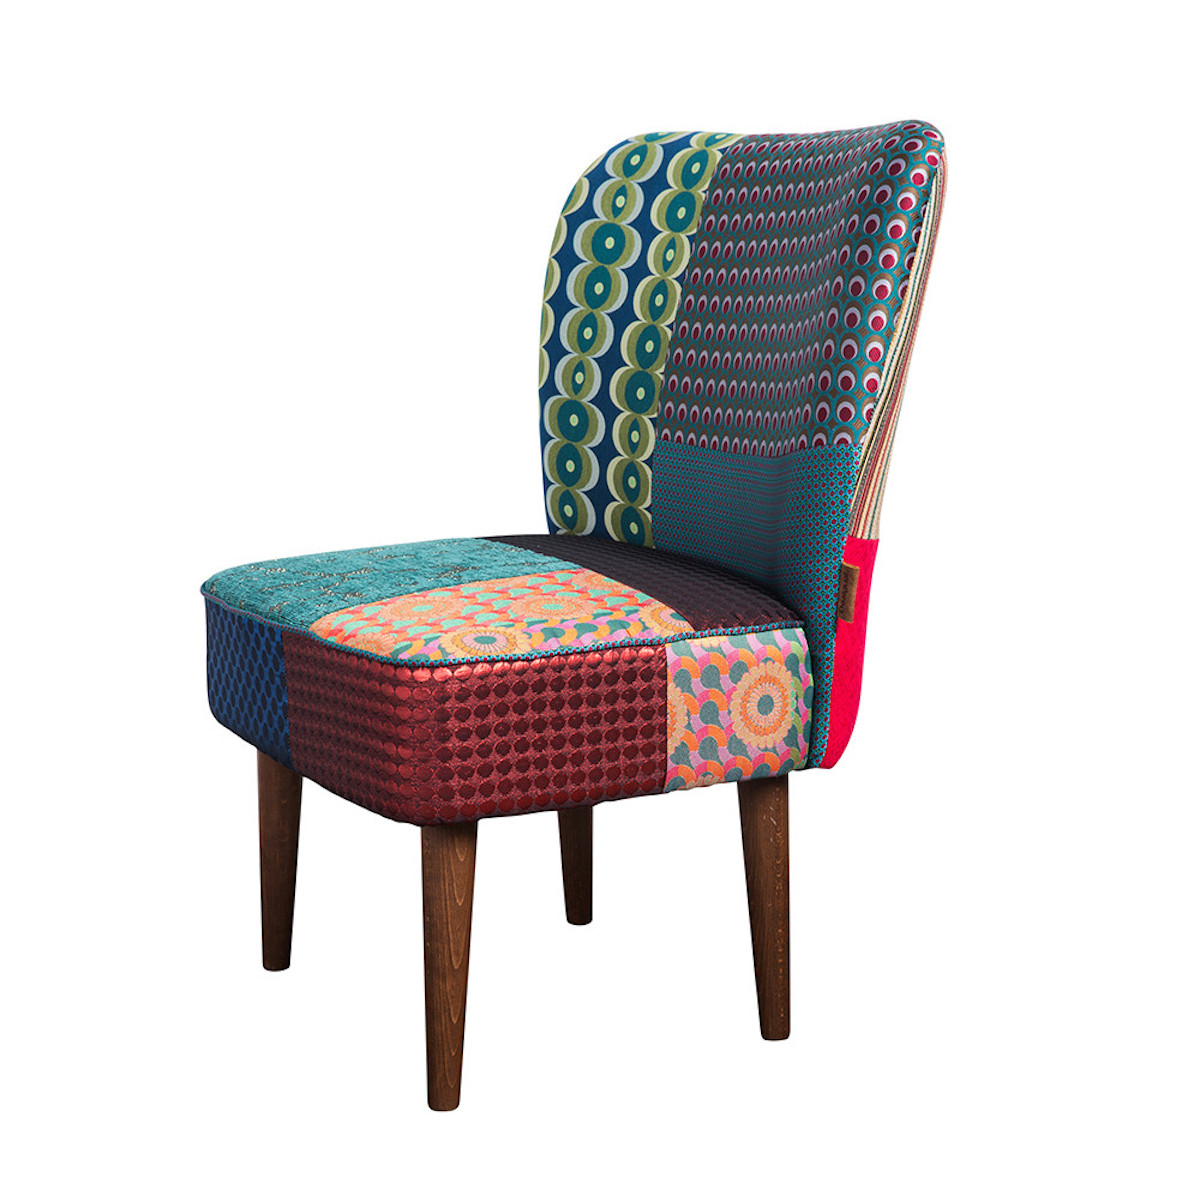 Patchwork Jacquard Chair